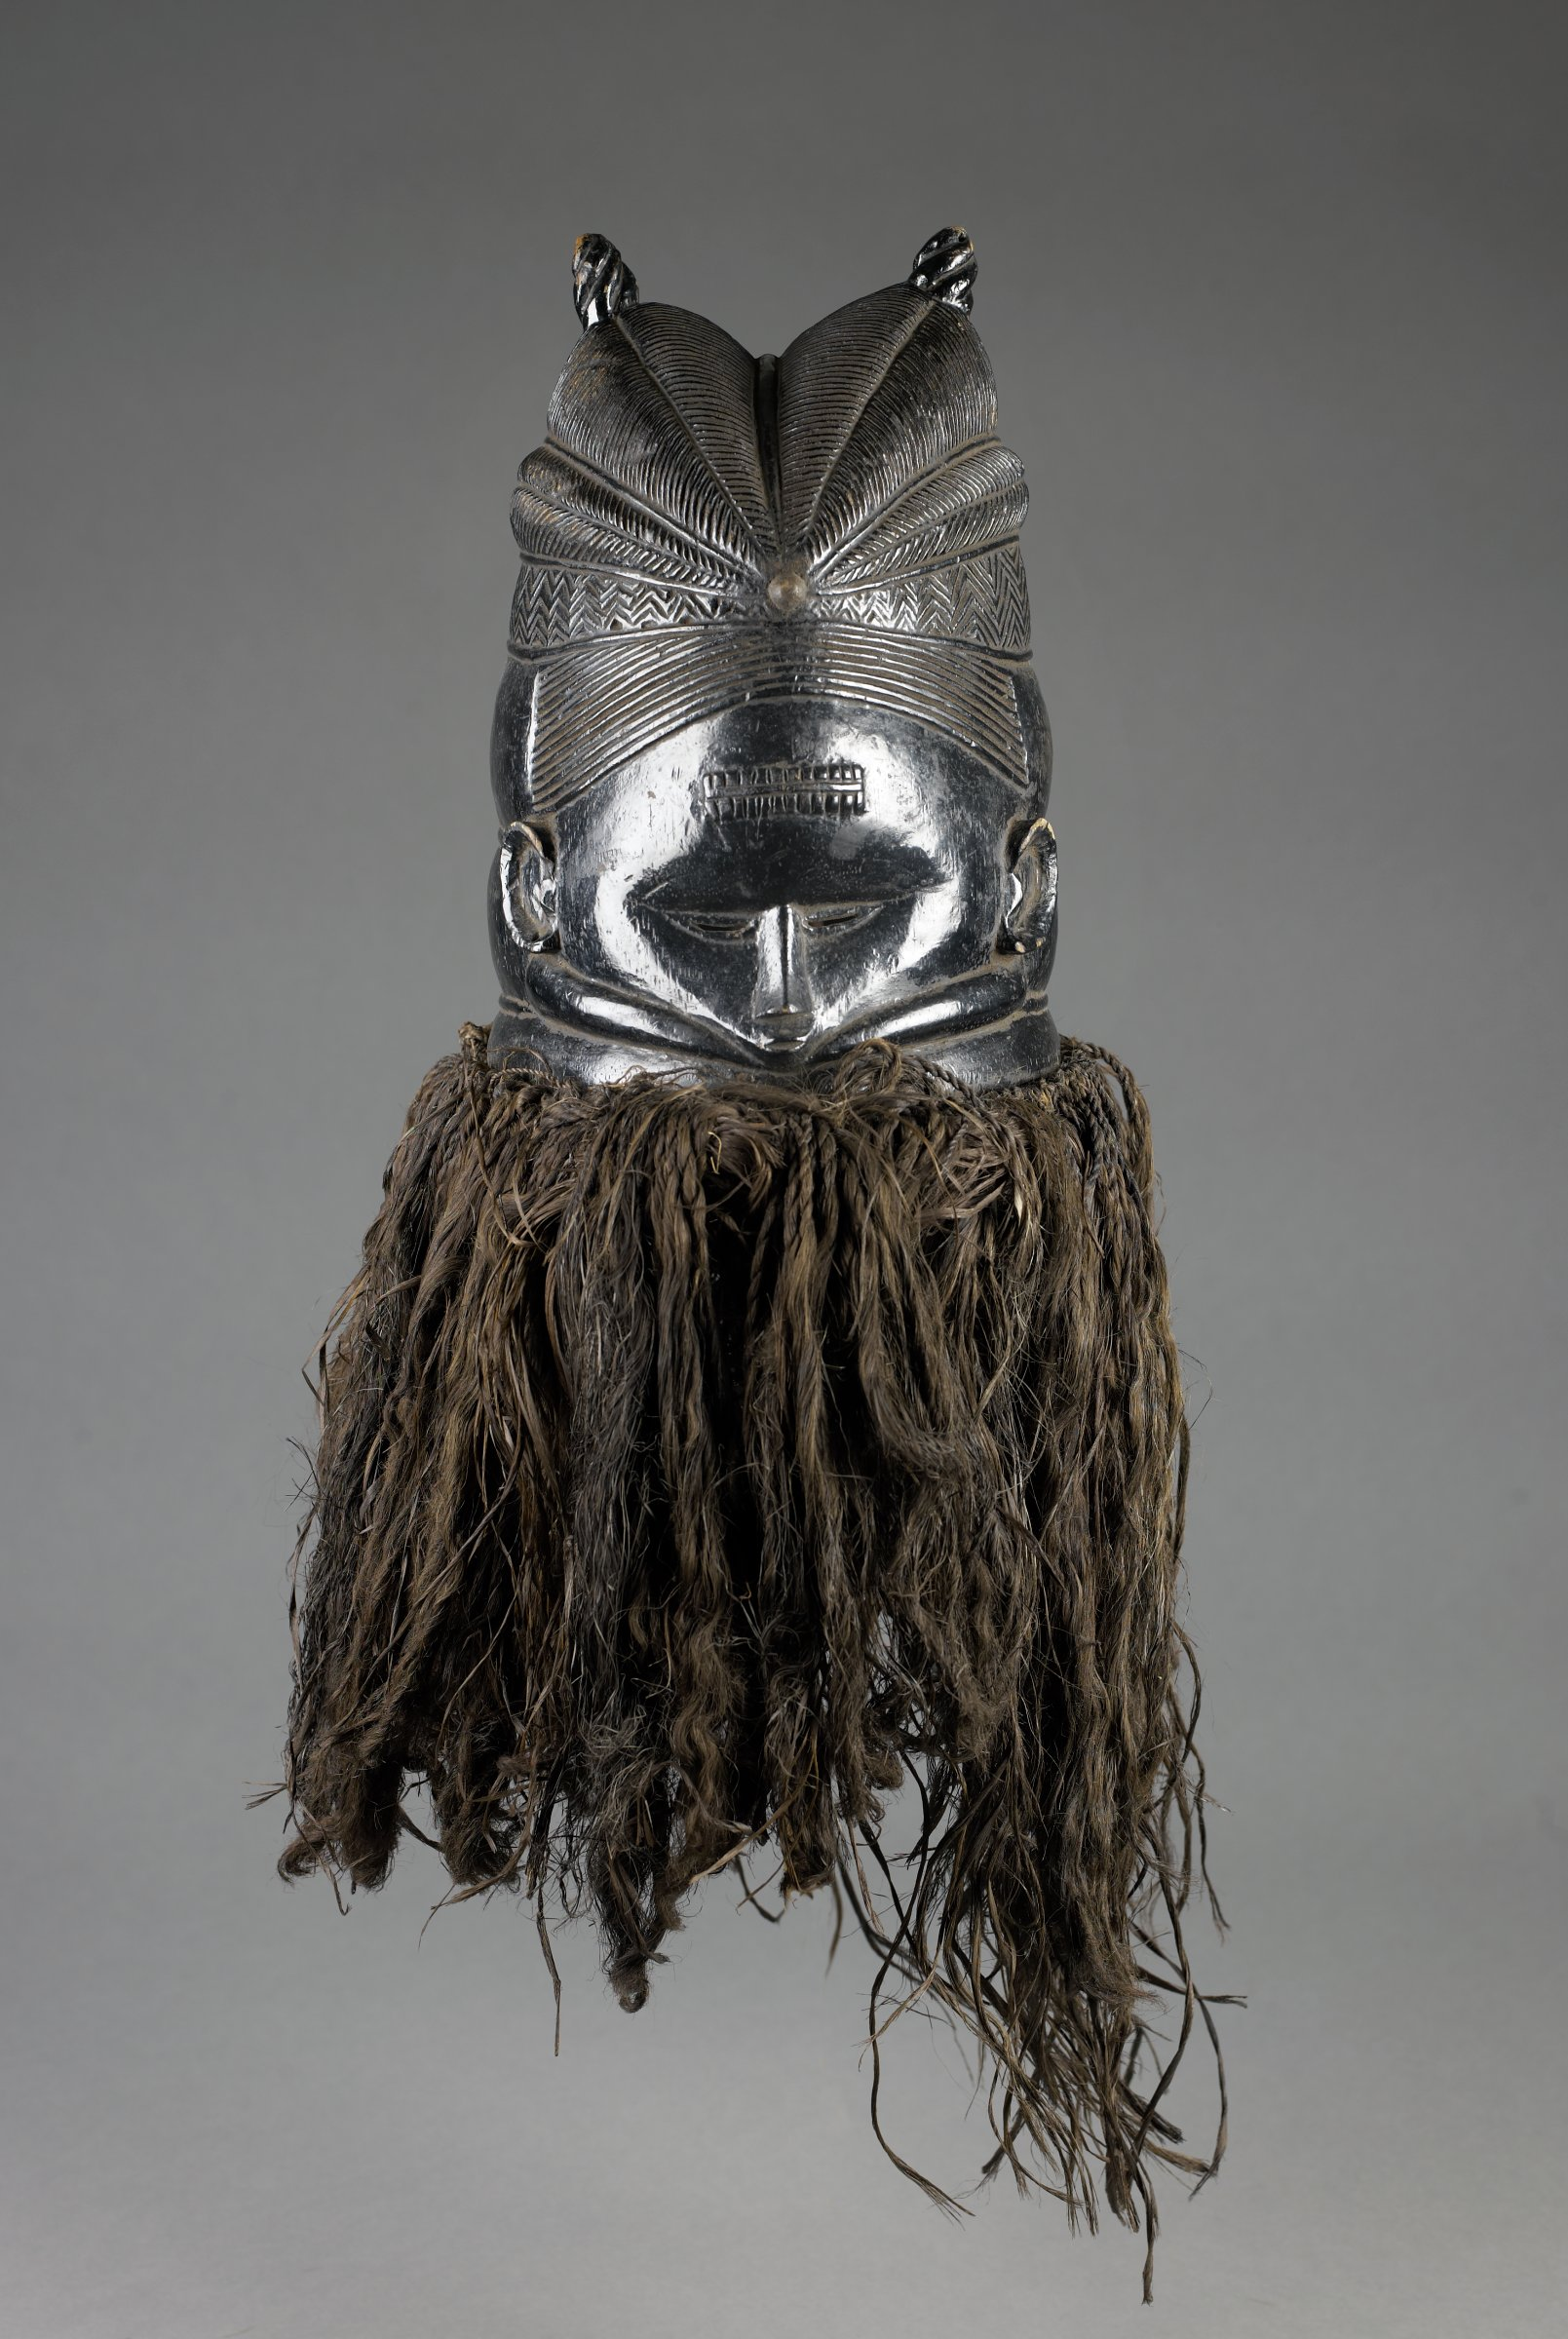 Helmet mask with female face has glossy, black surface, elaborate plaited coiffure, band of horizontal marks on forehead, slitted eyes, bulging rings around neck, and black raffia fringe attached to base.